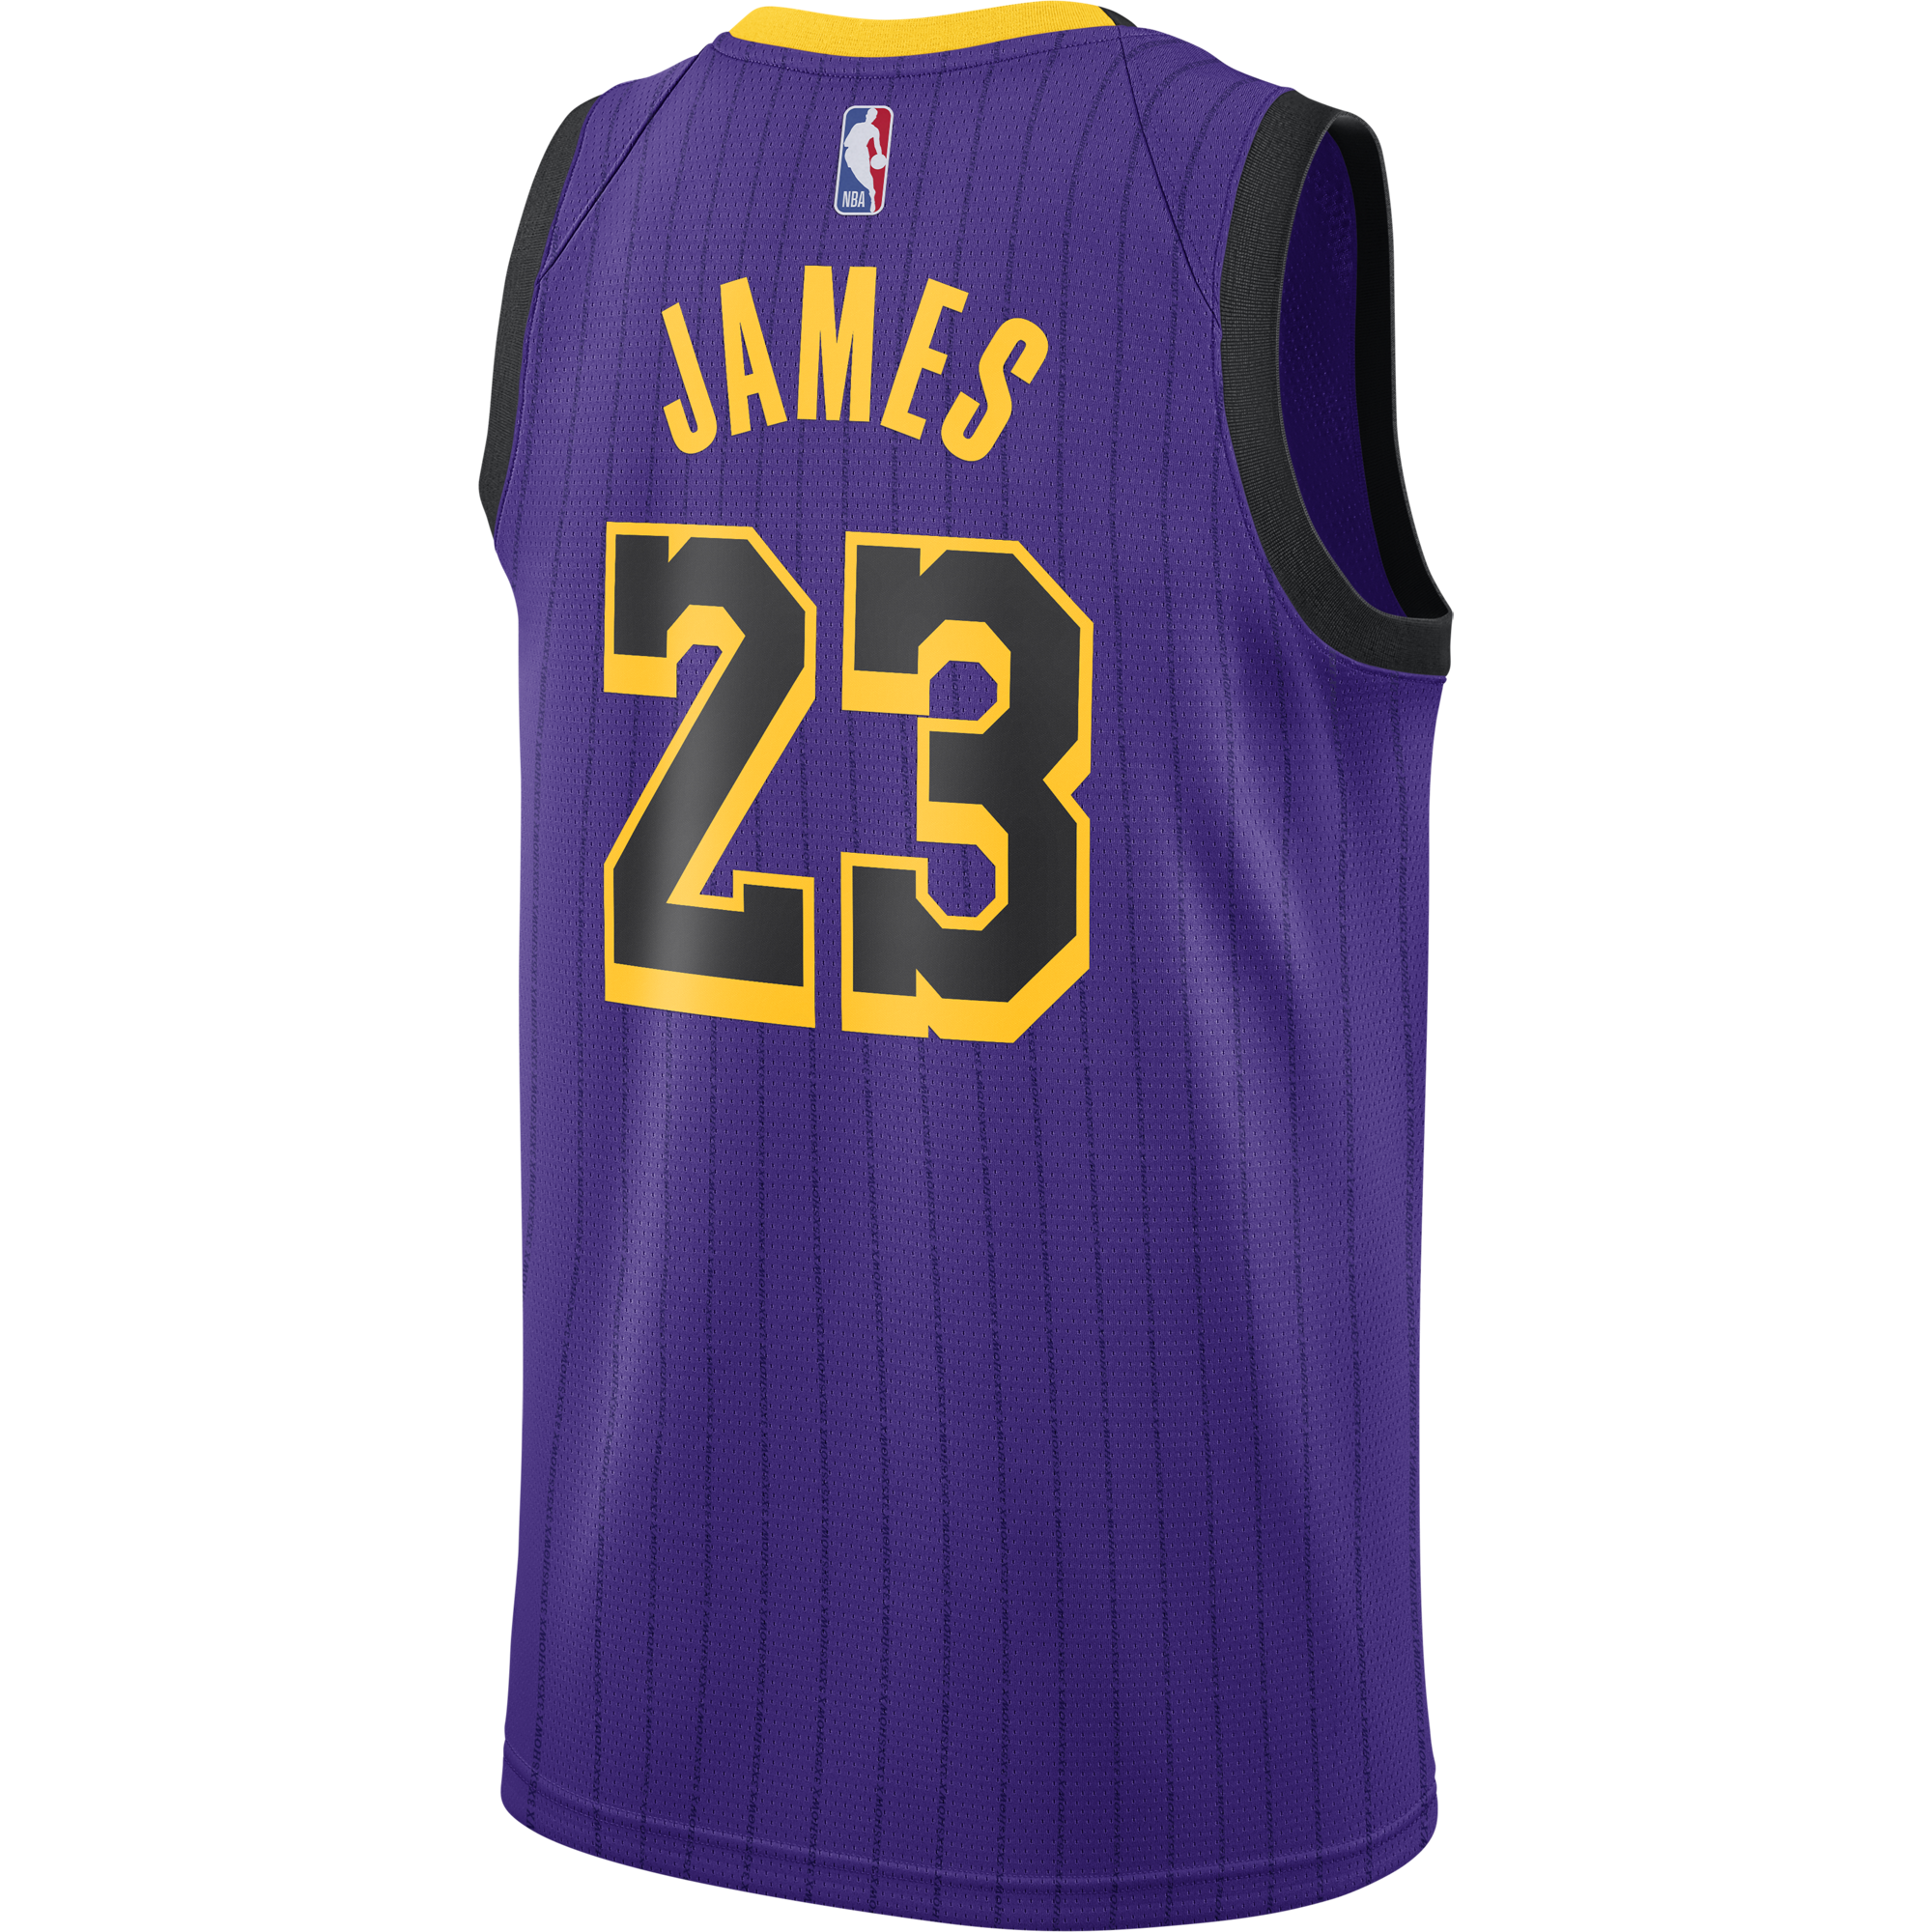 4218b69000d7 NIKE NBA LOS ANGELES LAKERS LEBRON JAMES SWINGMAN JERSEY. Previous Next.  OTHER COLORS